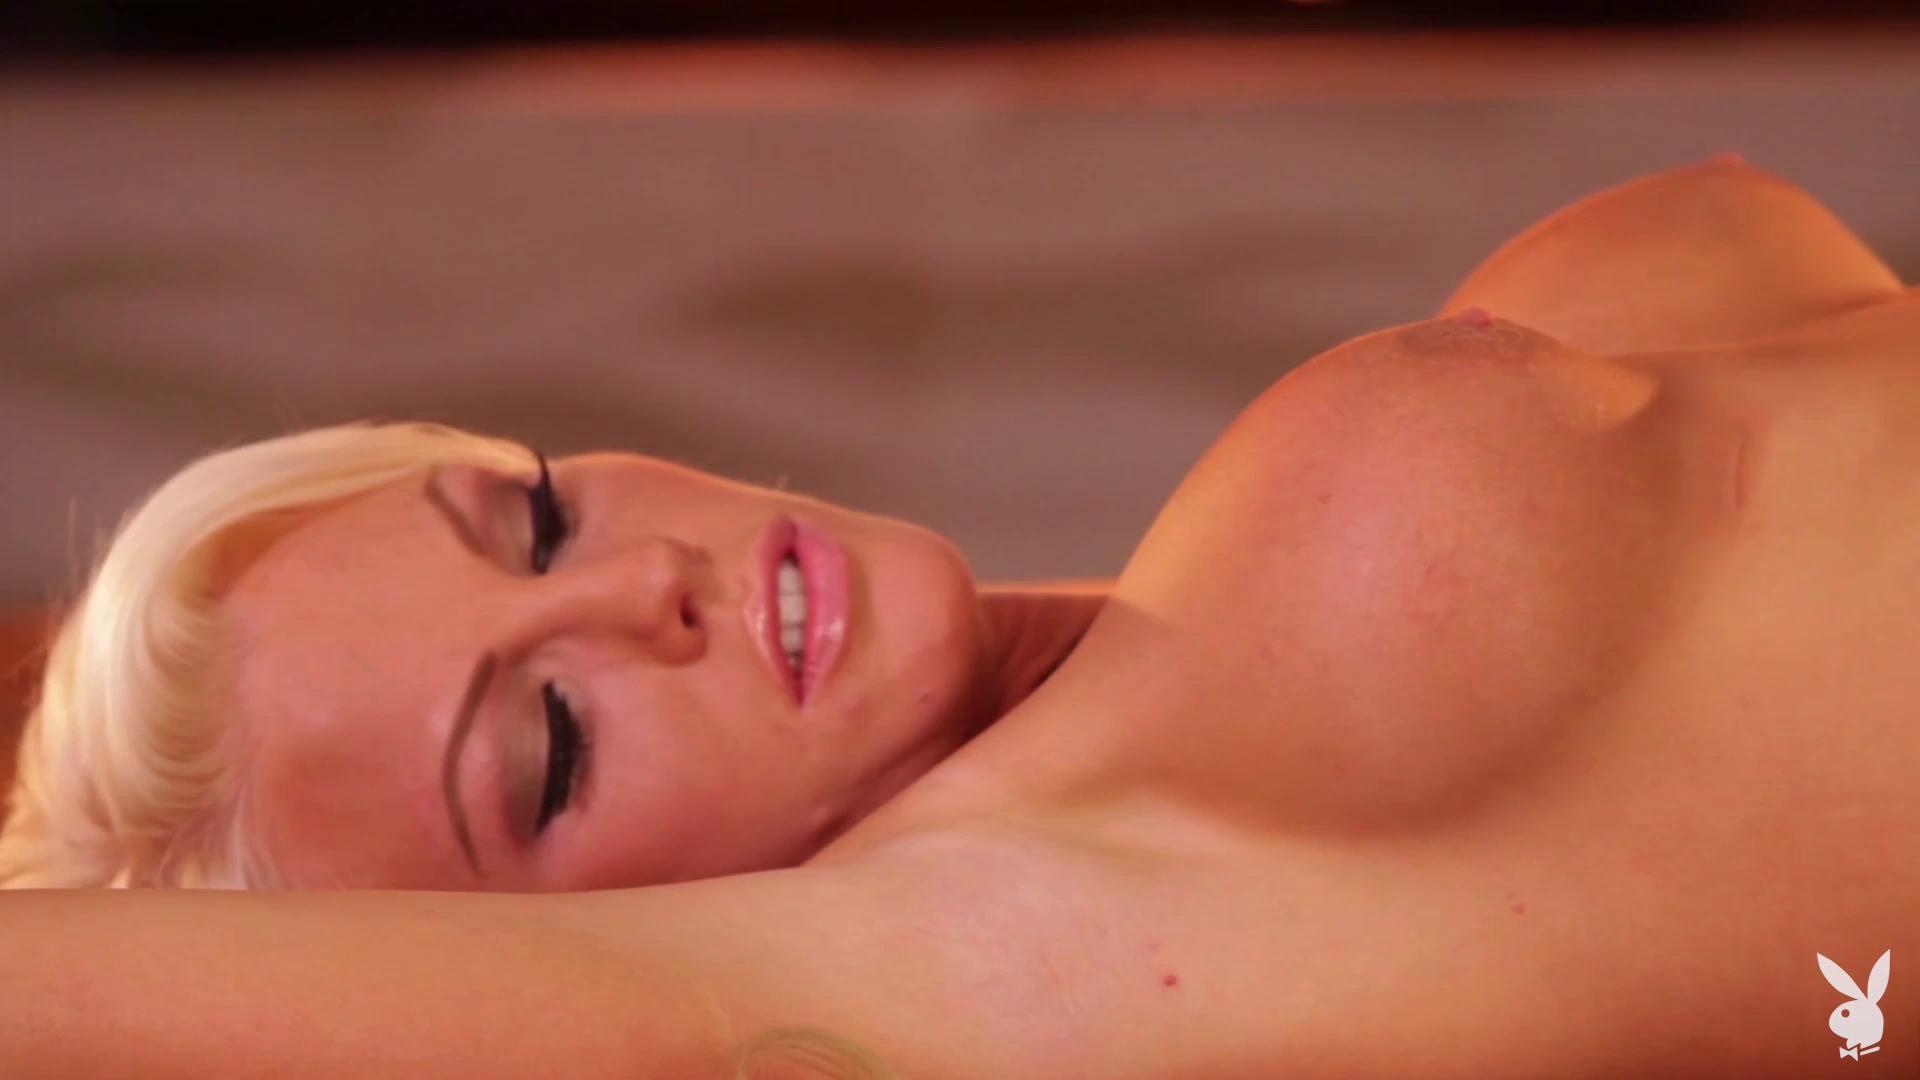 PlayboyPlus – Mashup Fireside Foxes Vol 1